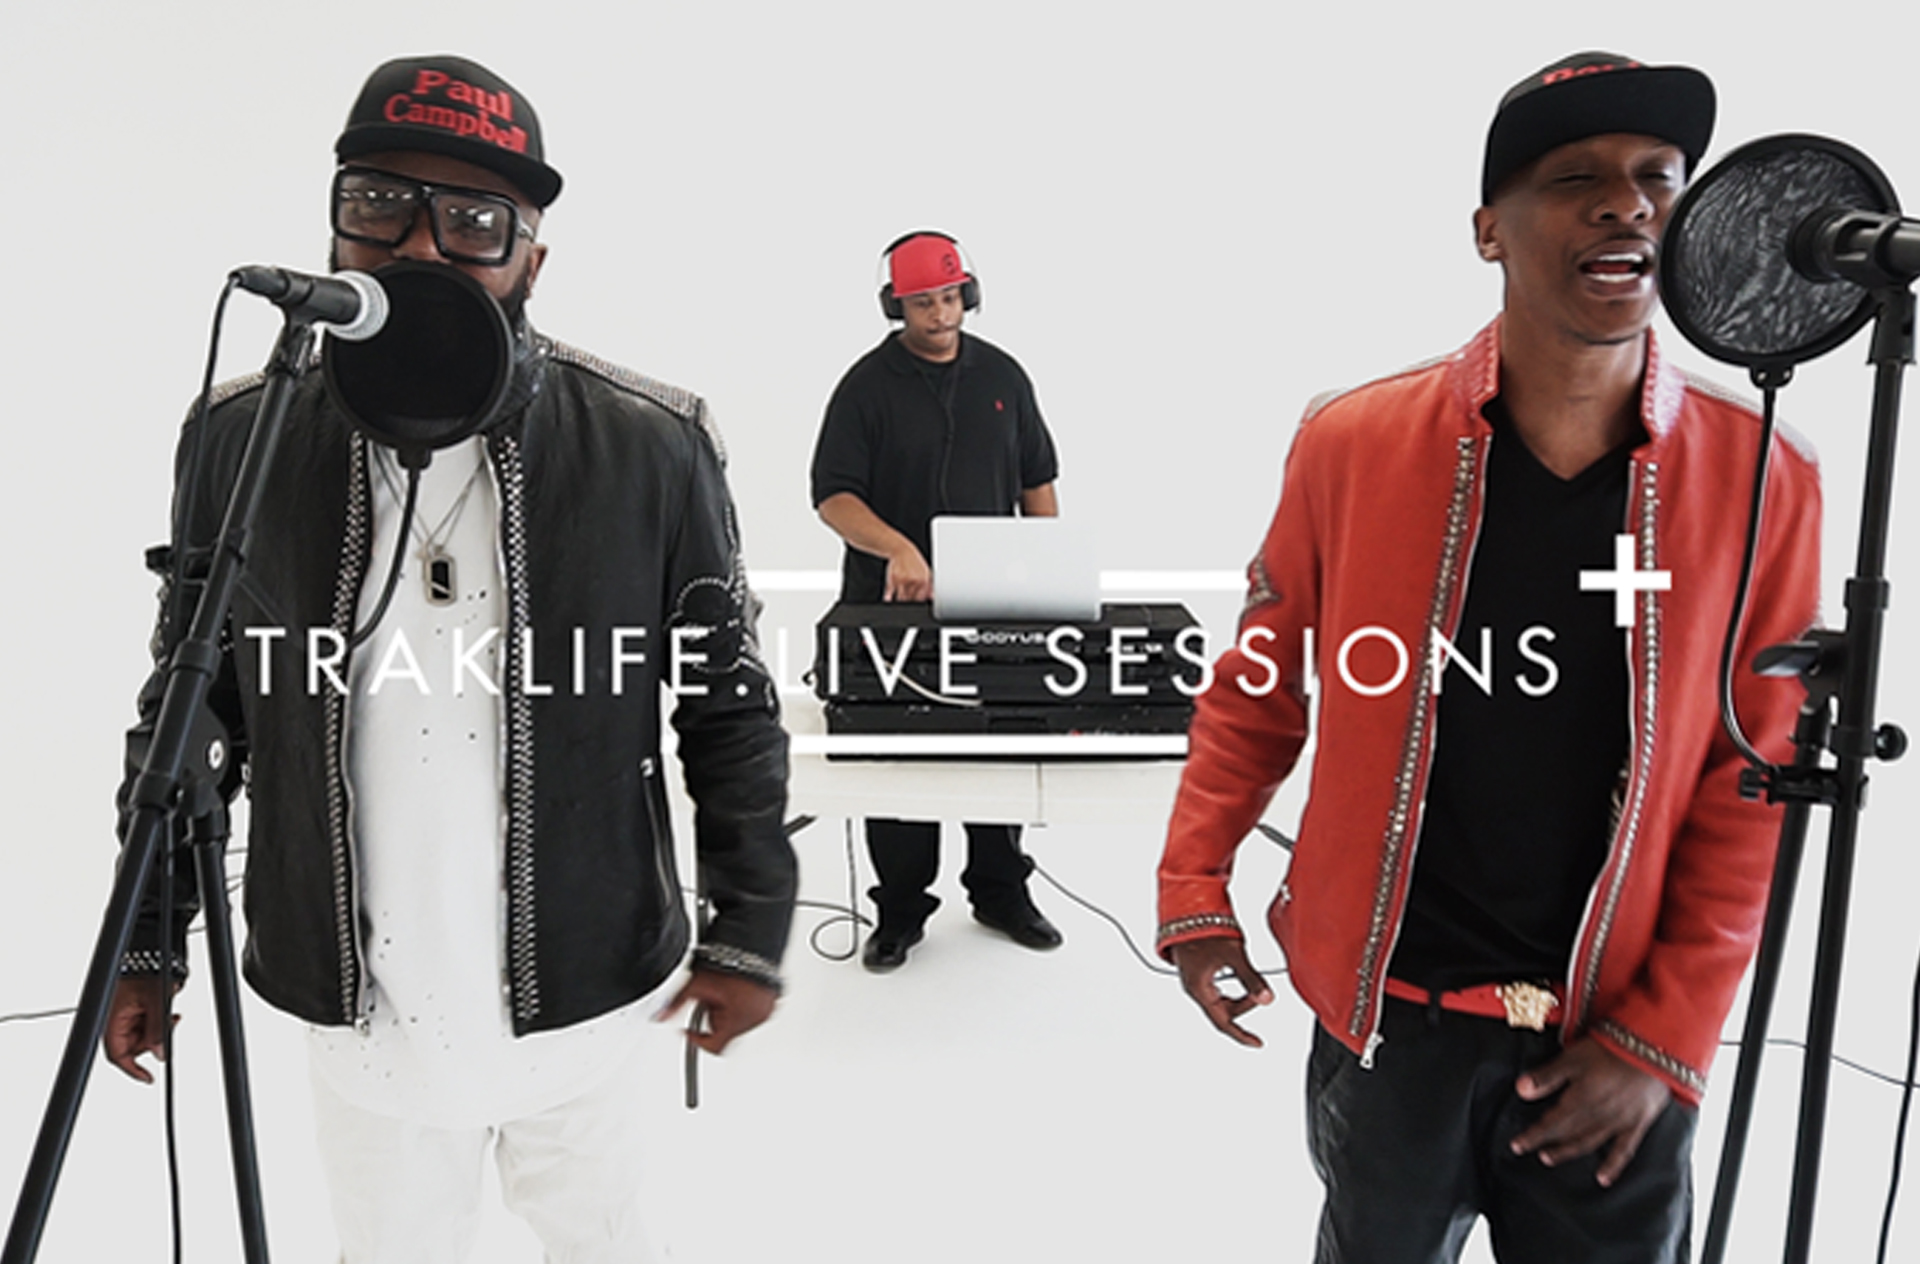 Traklife Live Sessions